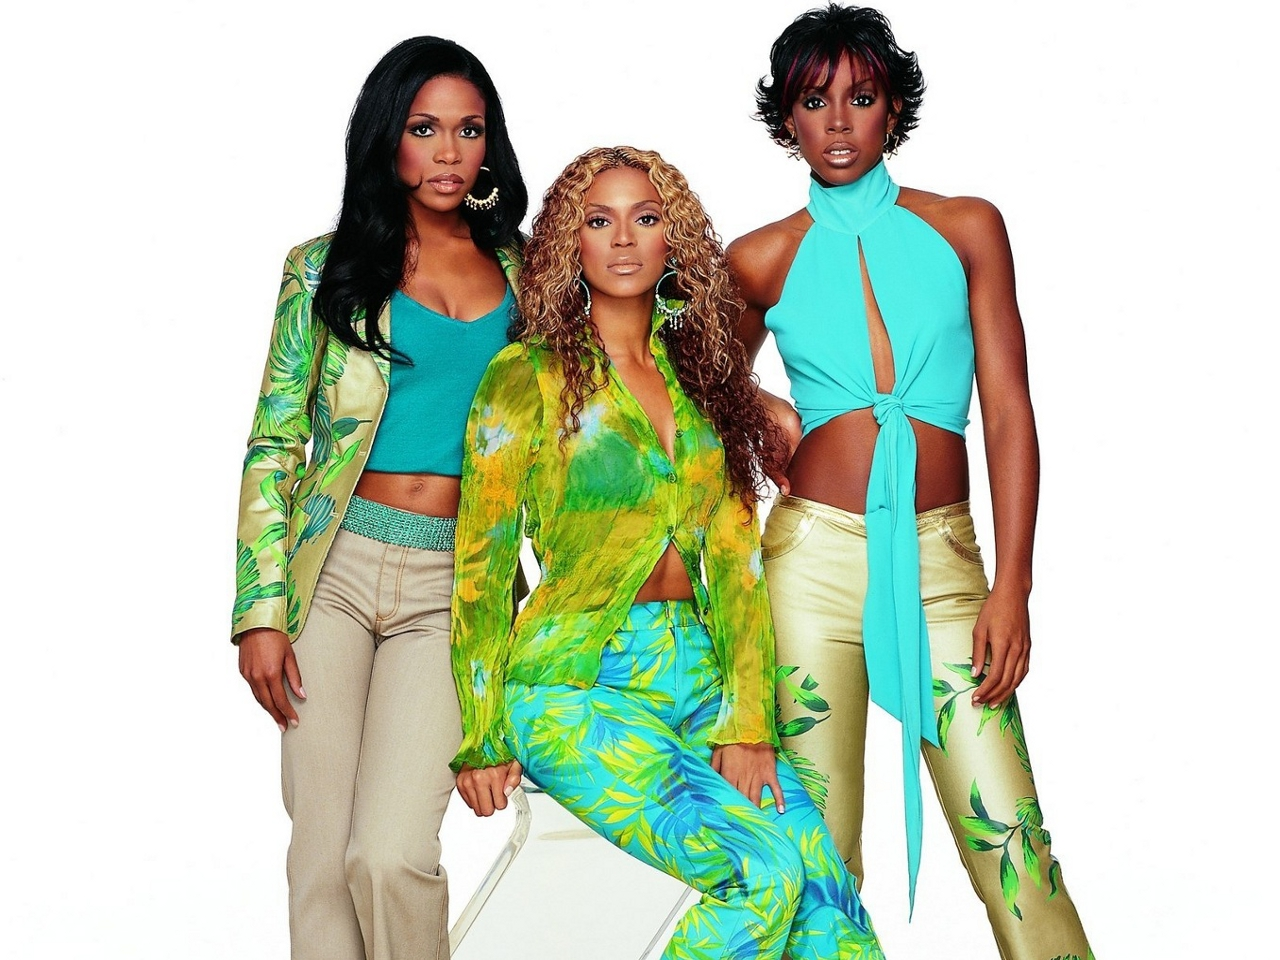 Destinys-Child-destinys-child-33327388-1280-960